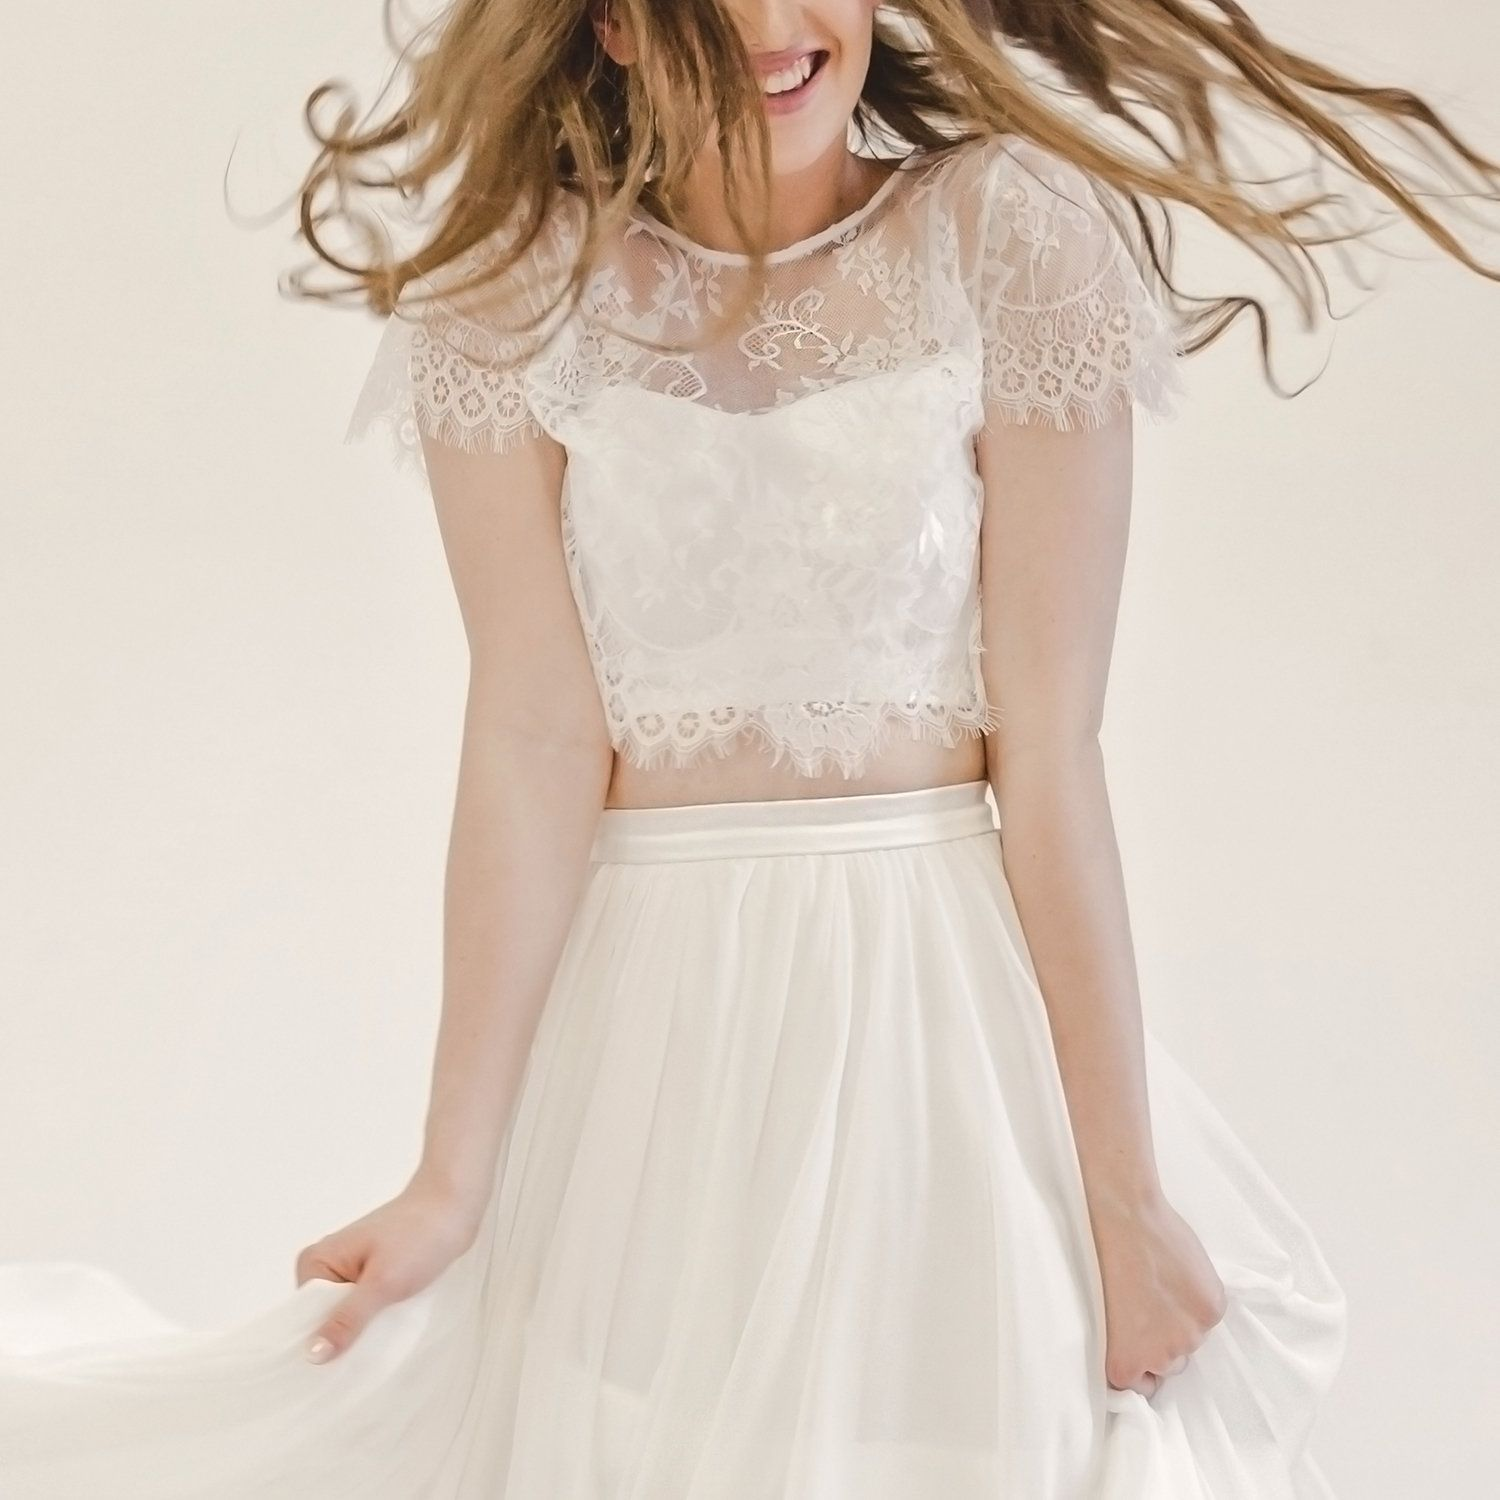 Emily lace crop top and chiffon skirt three piece